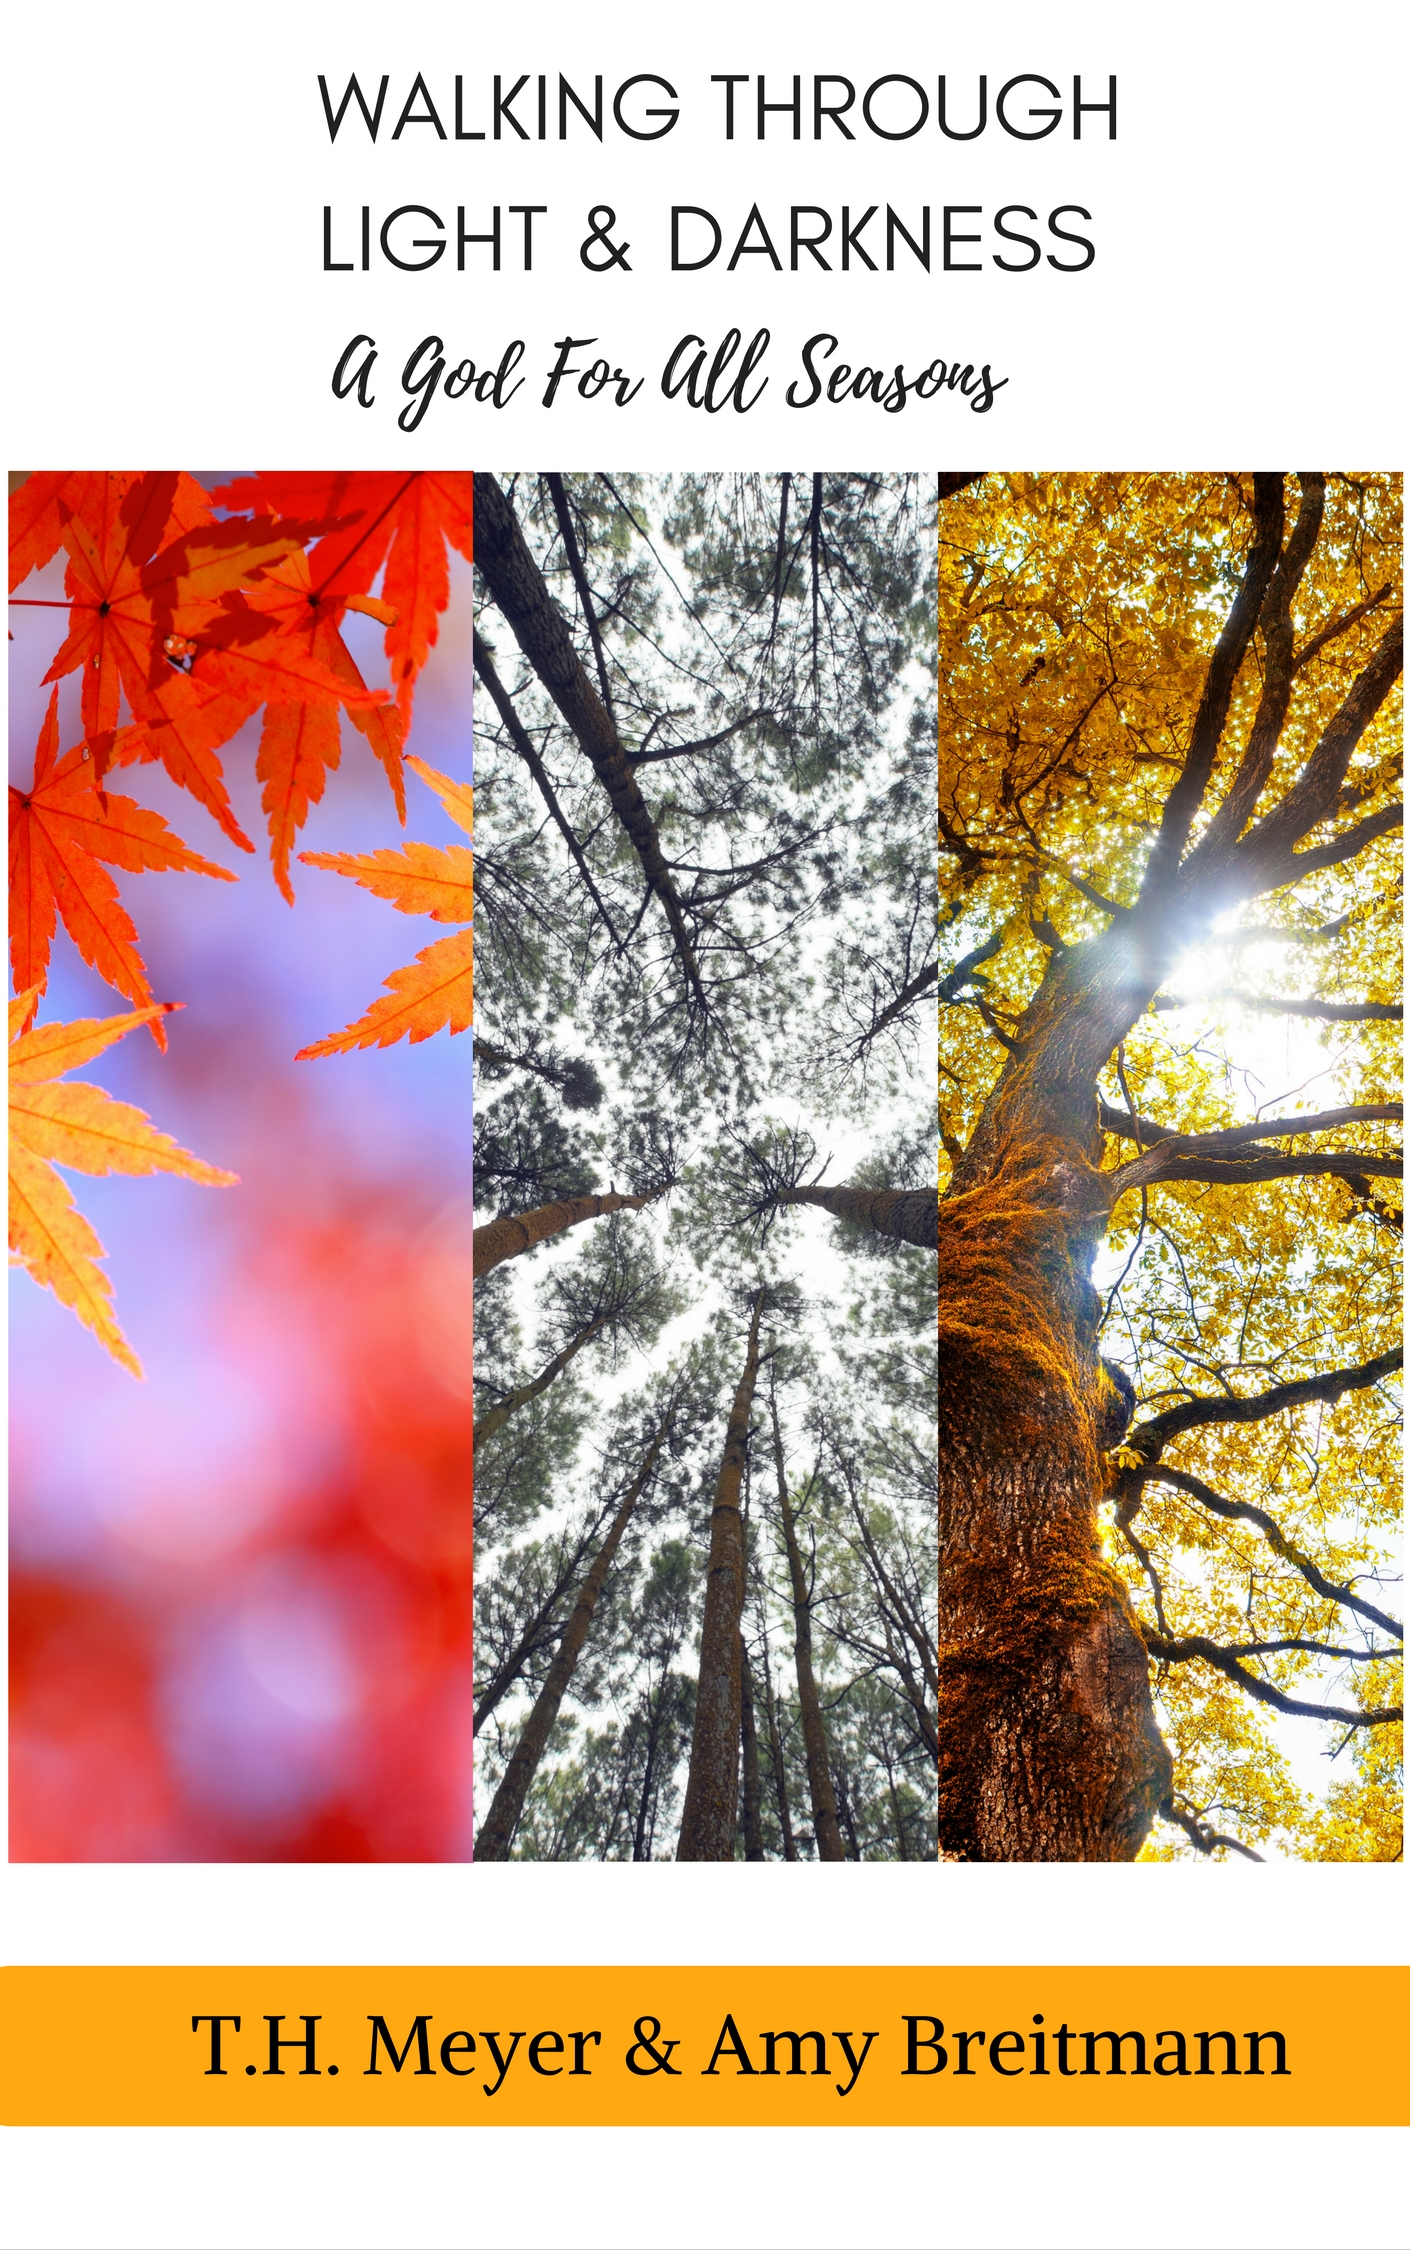 Upcoming book, A God for All Seasons by T.H. Meyer and Amy Breitmann